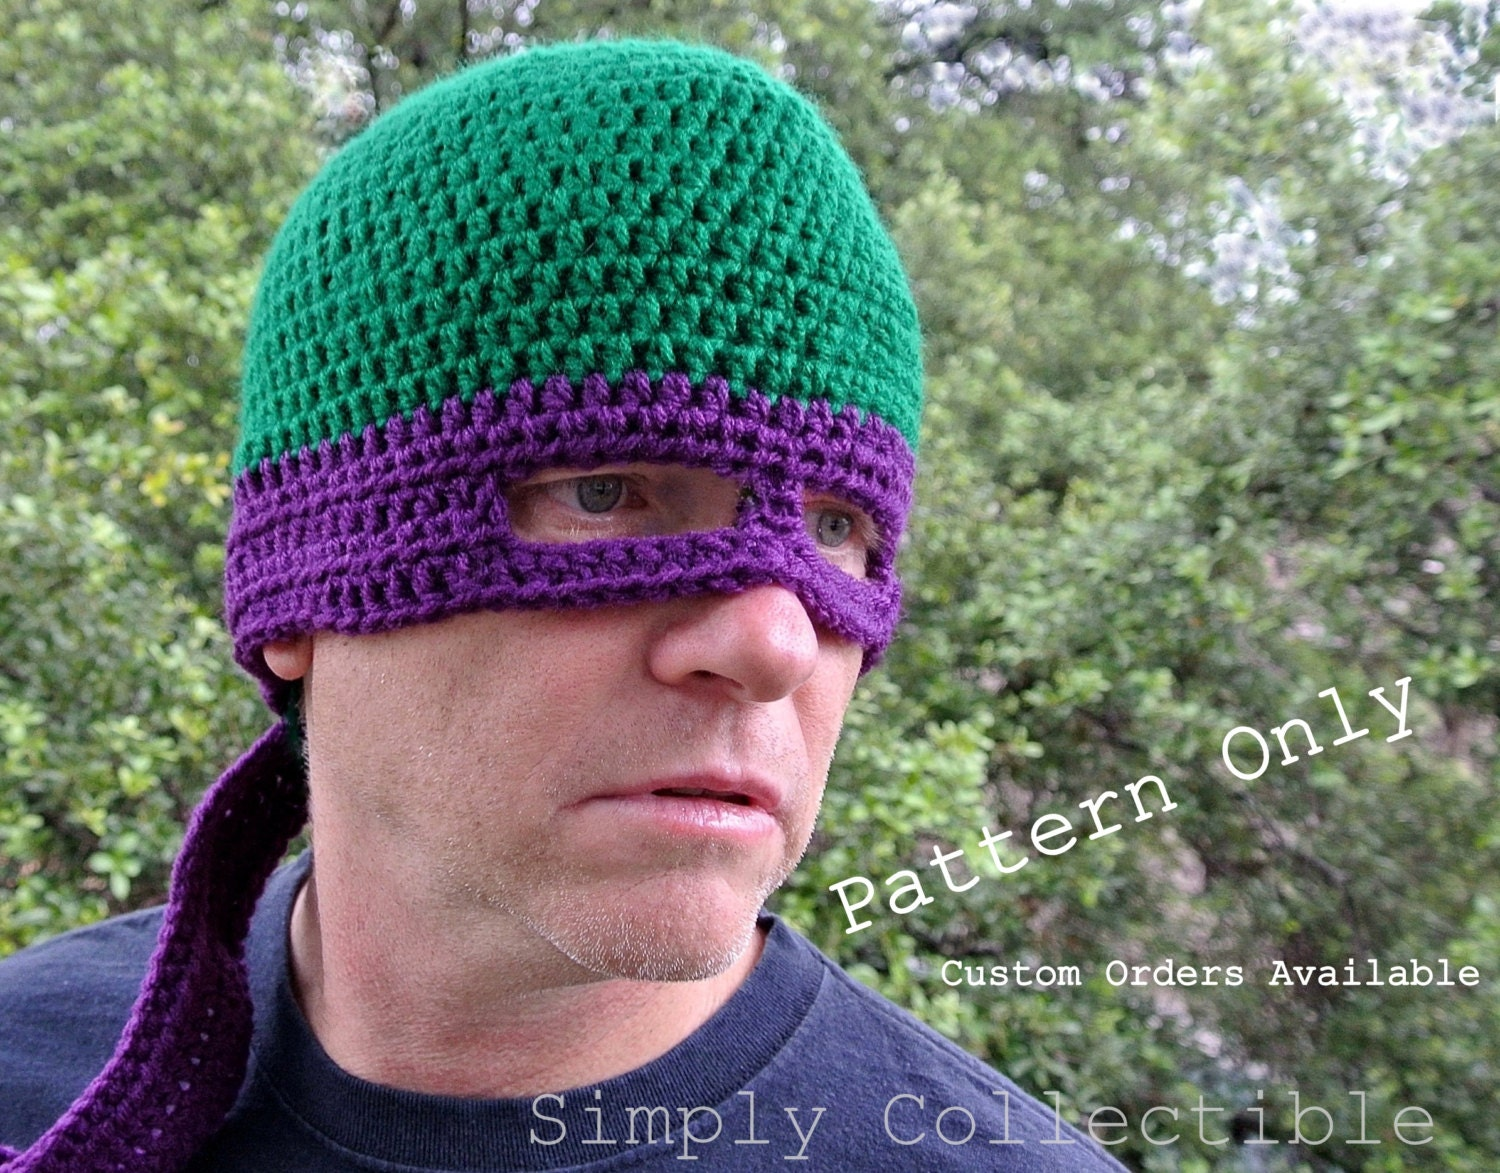 Free Crochet Pattern For Ninja Hat : Unavailable Listing on Etsy